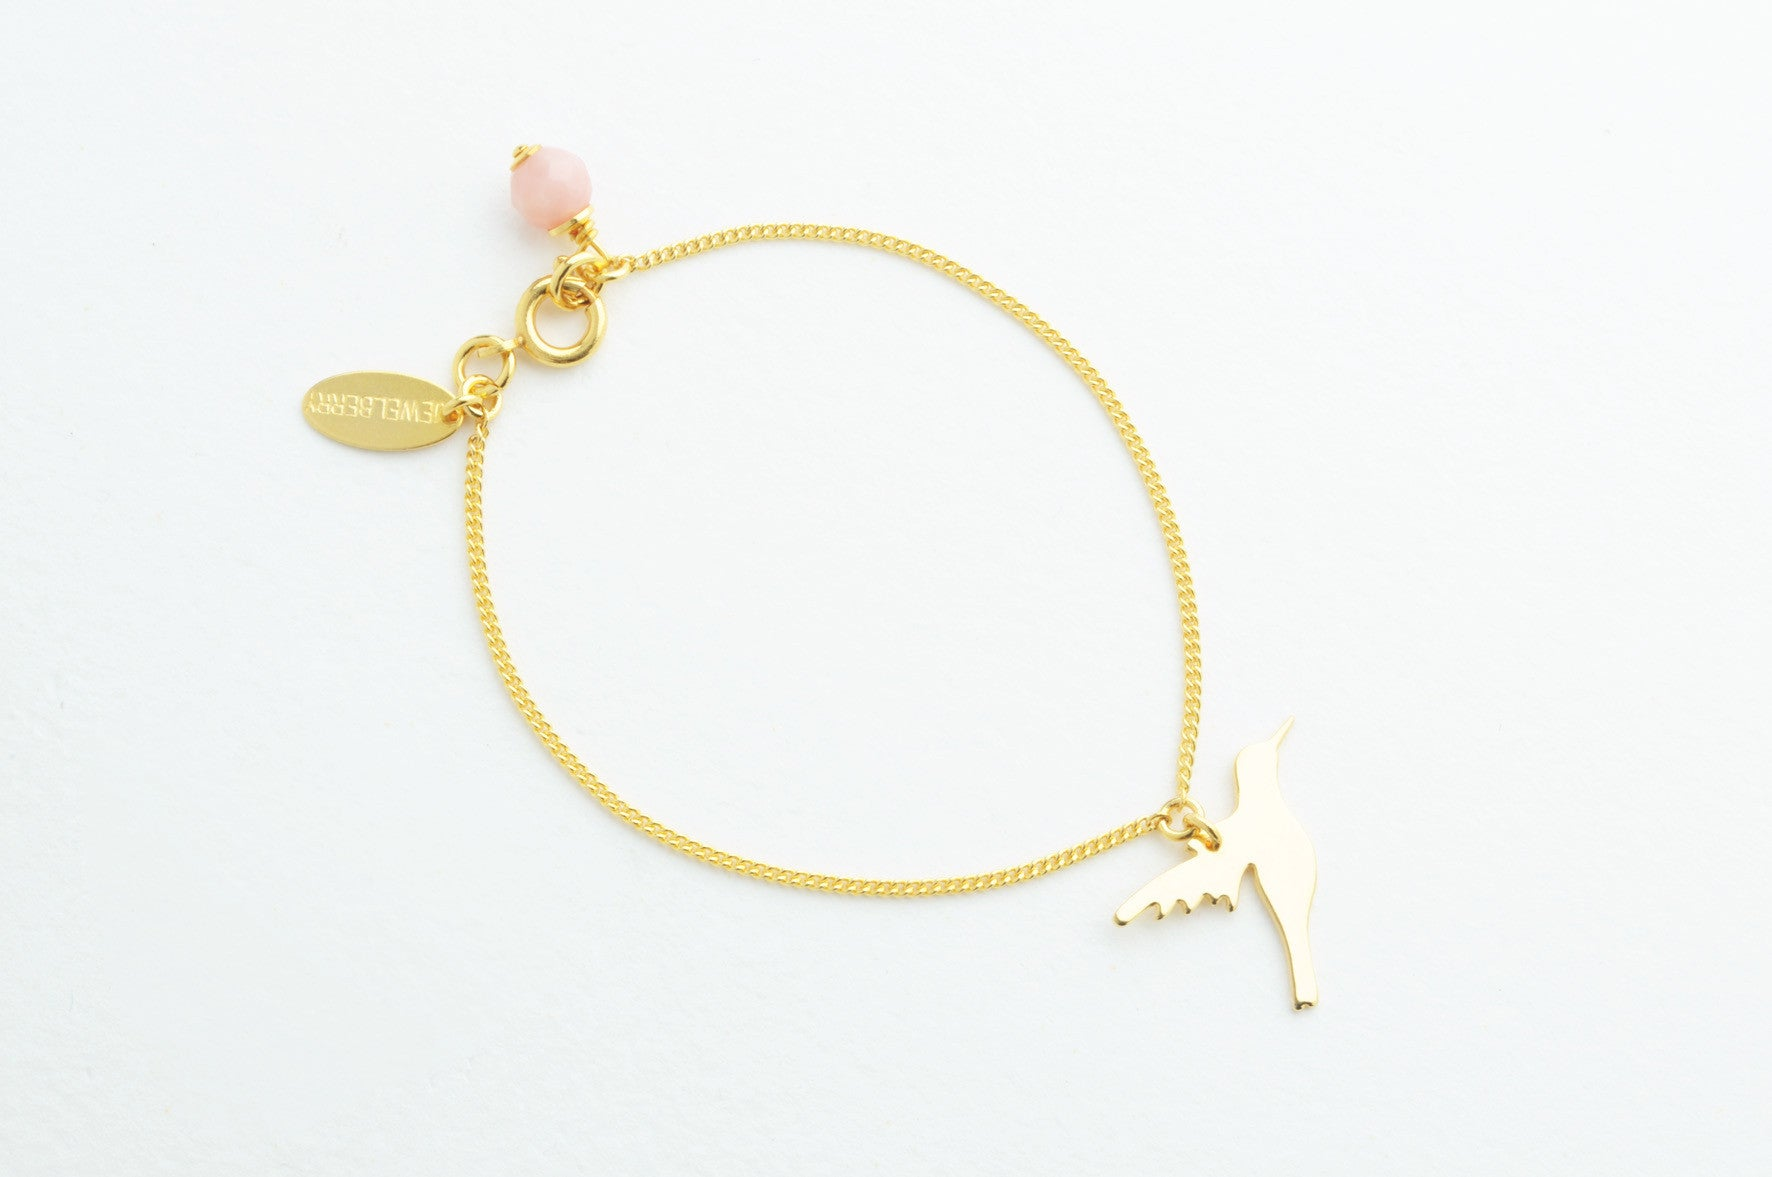 Armband CUT OUT HUMMINGBIRD vergoldet